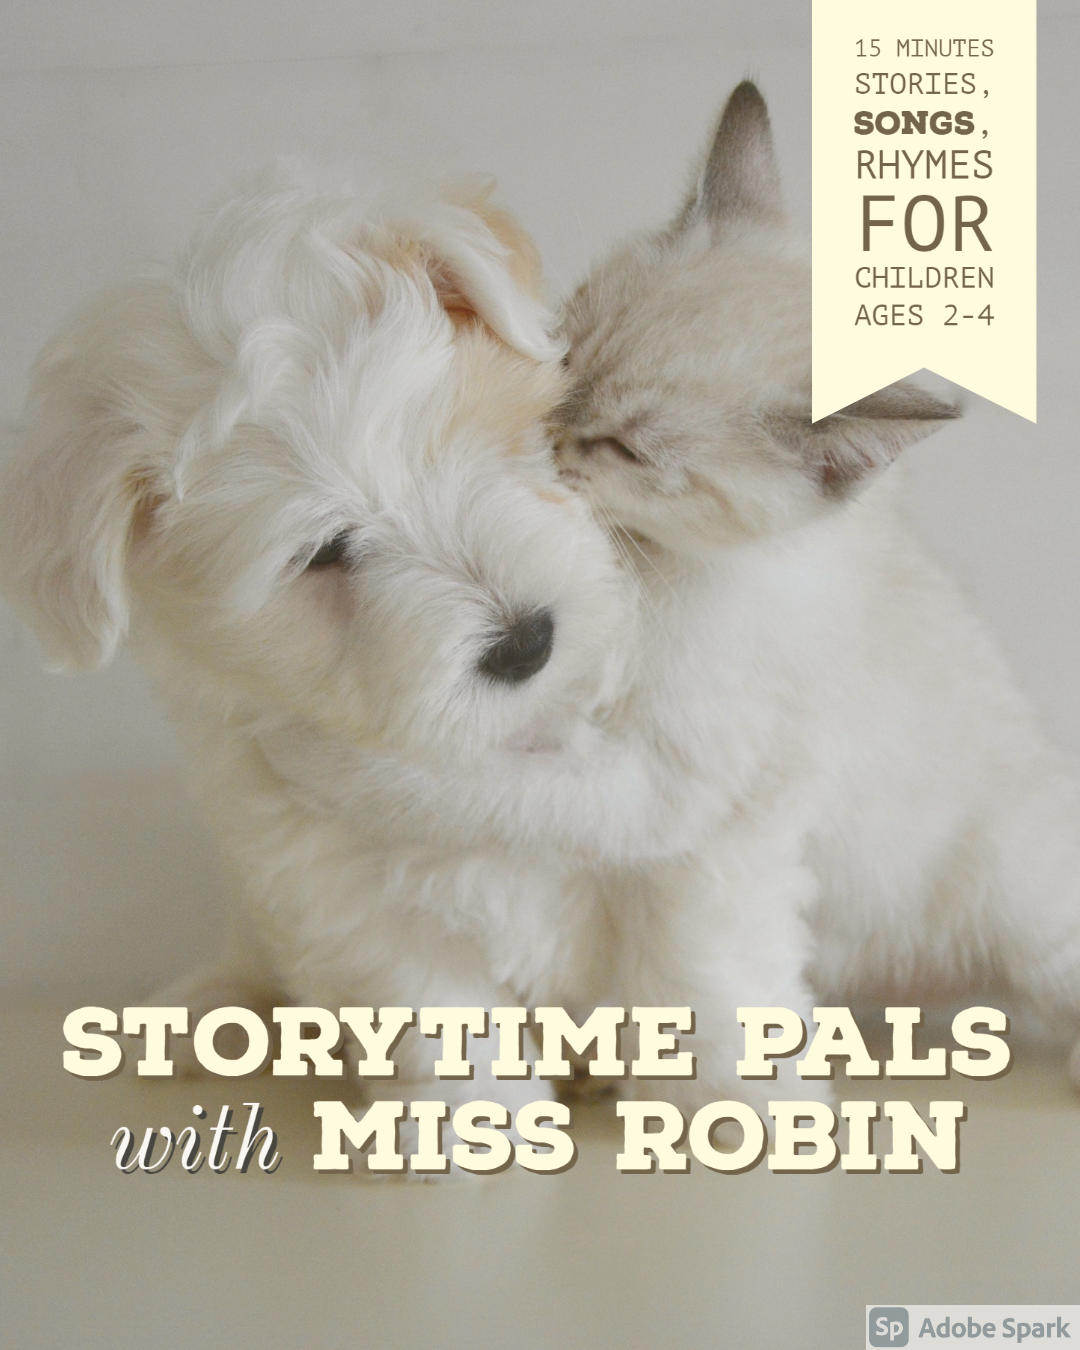 Storytime Pals with Miss Robin